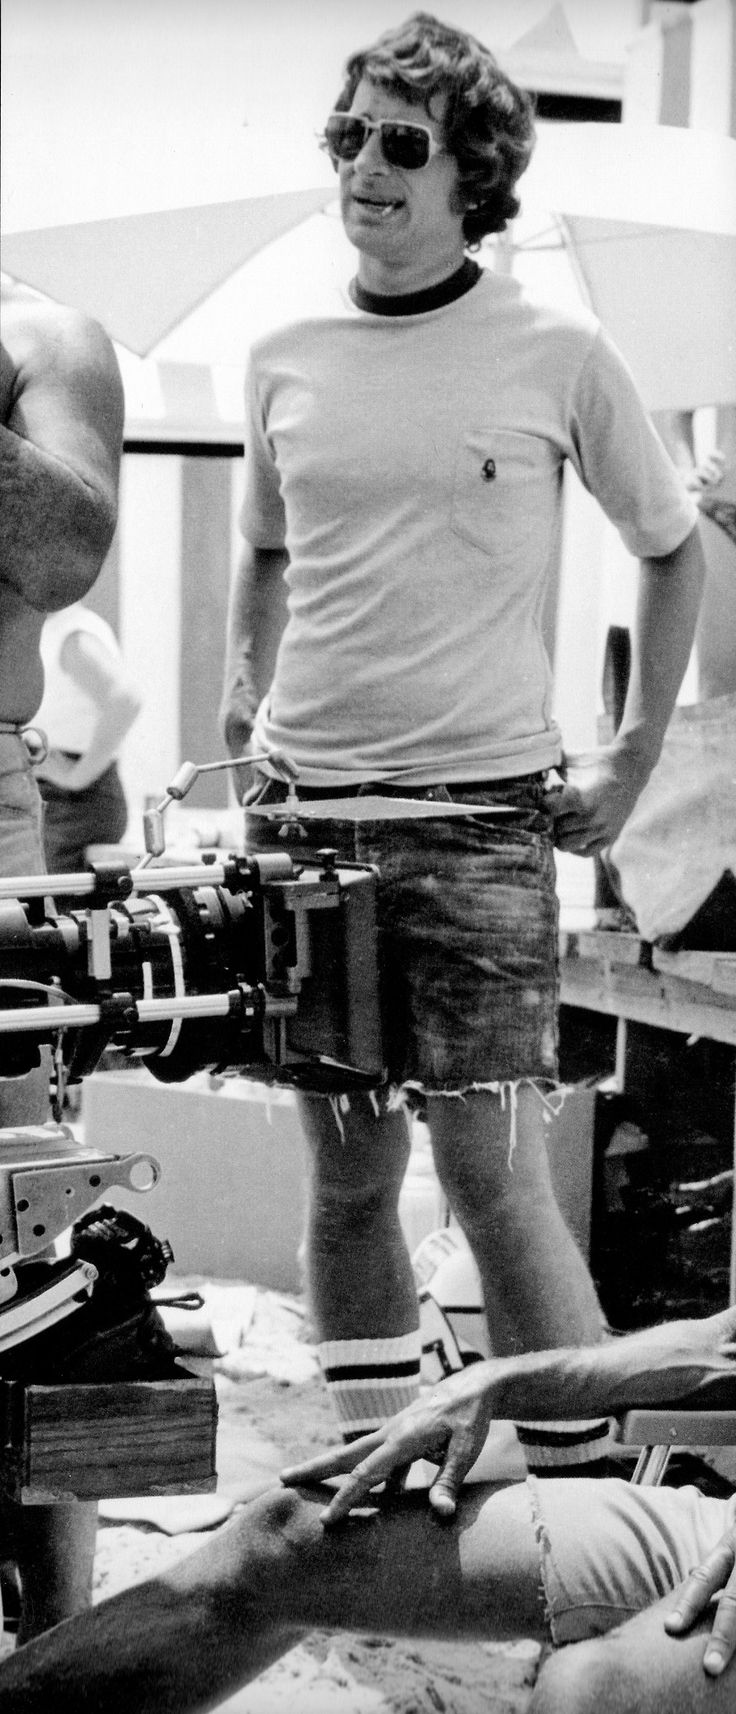 When the 27-year-old Steven Spielberg arrived at Martha's Vineyard to film Jaws, he had only one feature film under his belt: a box-office flop called Sugarland Express. Determined to redeem himself, he planned to pack Jaws with adventure, horror, and realism. But from the start, the film had the makings of a disaster.